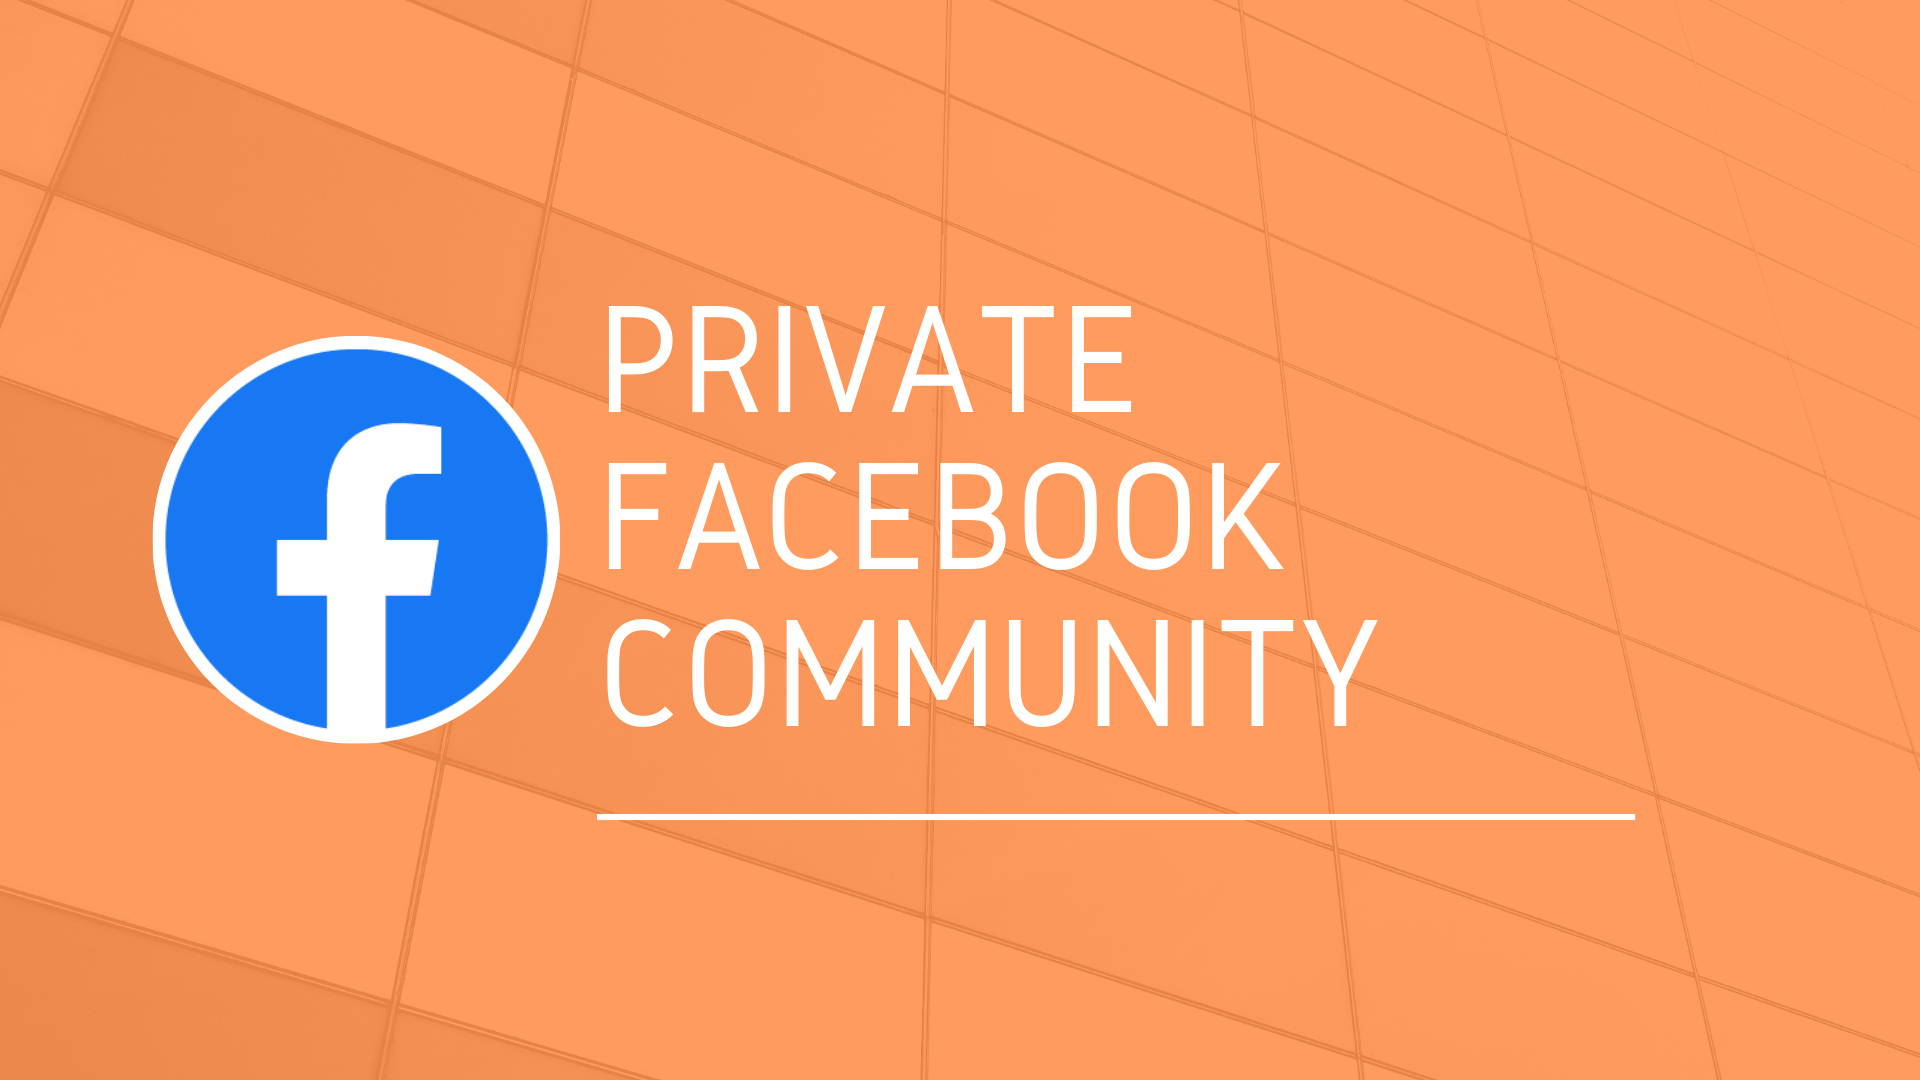 private facebook community invitation for Aneu Apothecary